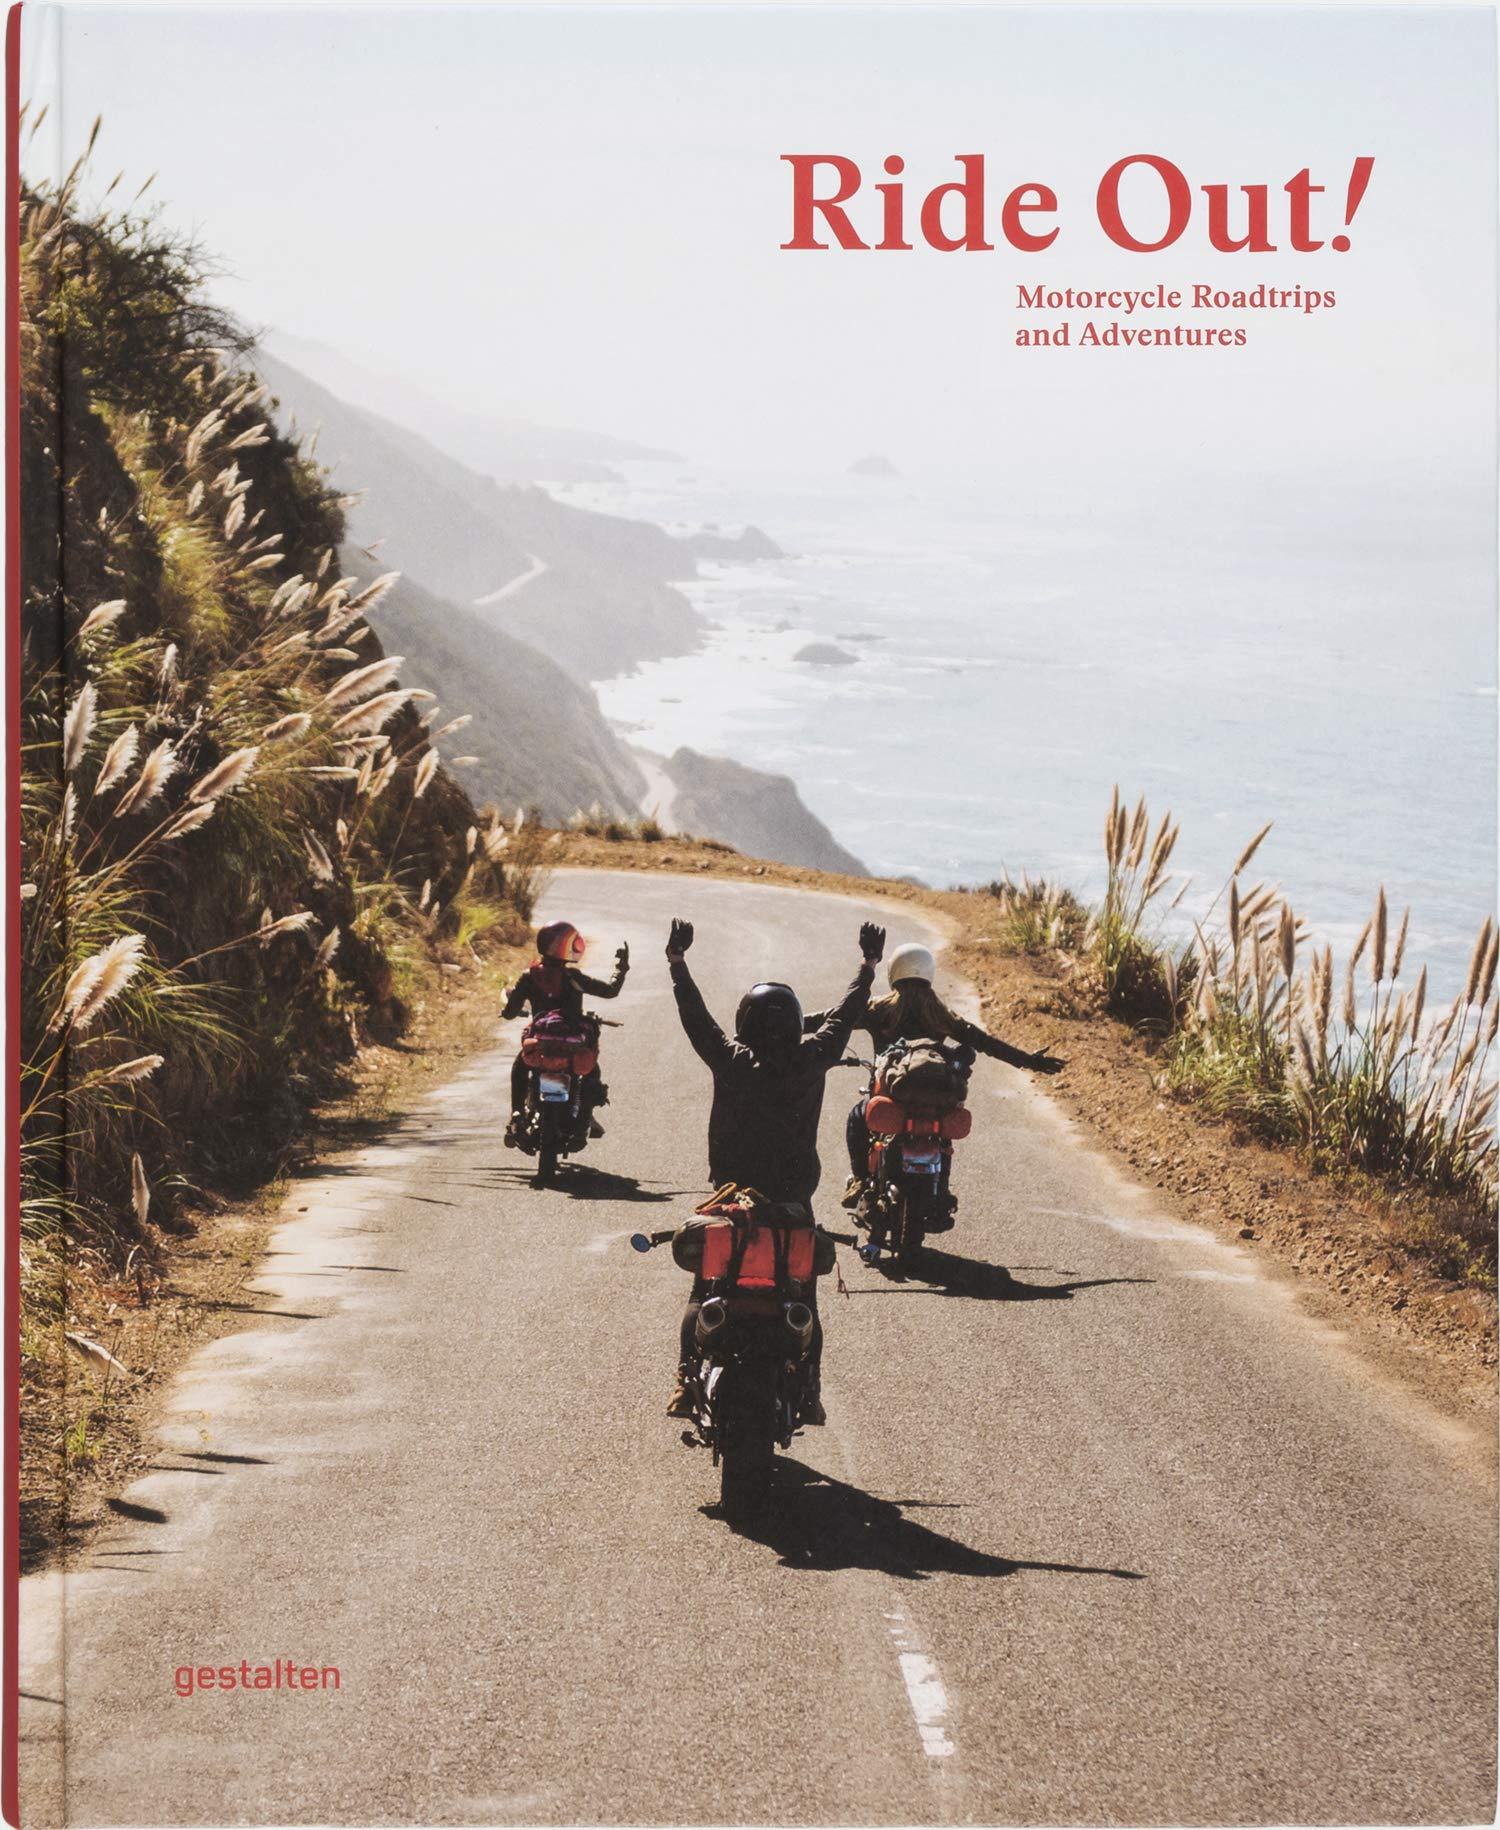 Motorcycle Road Trip >> Ride Out Motorcycle Road Trips And Adventures Gestalten